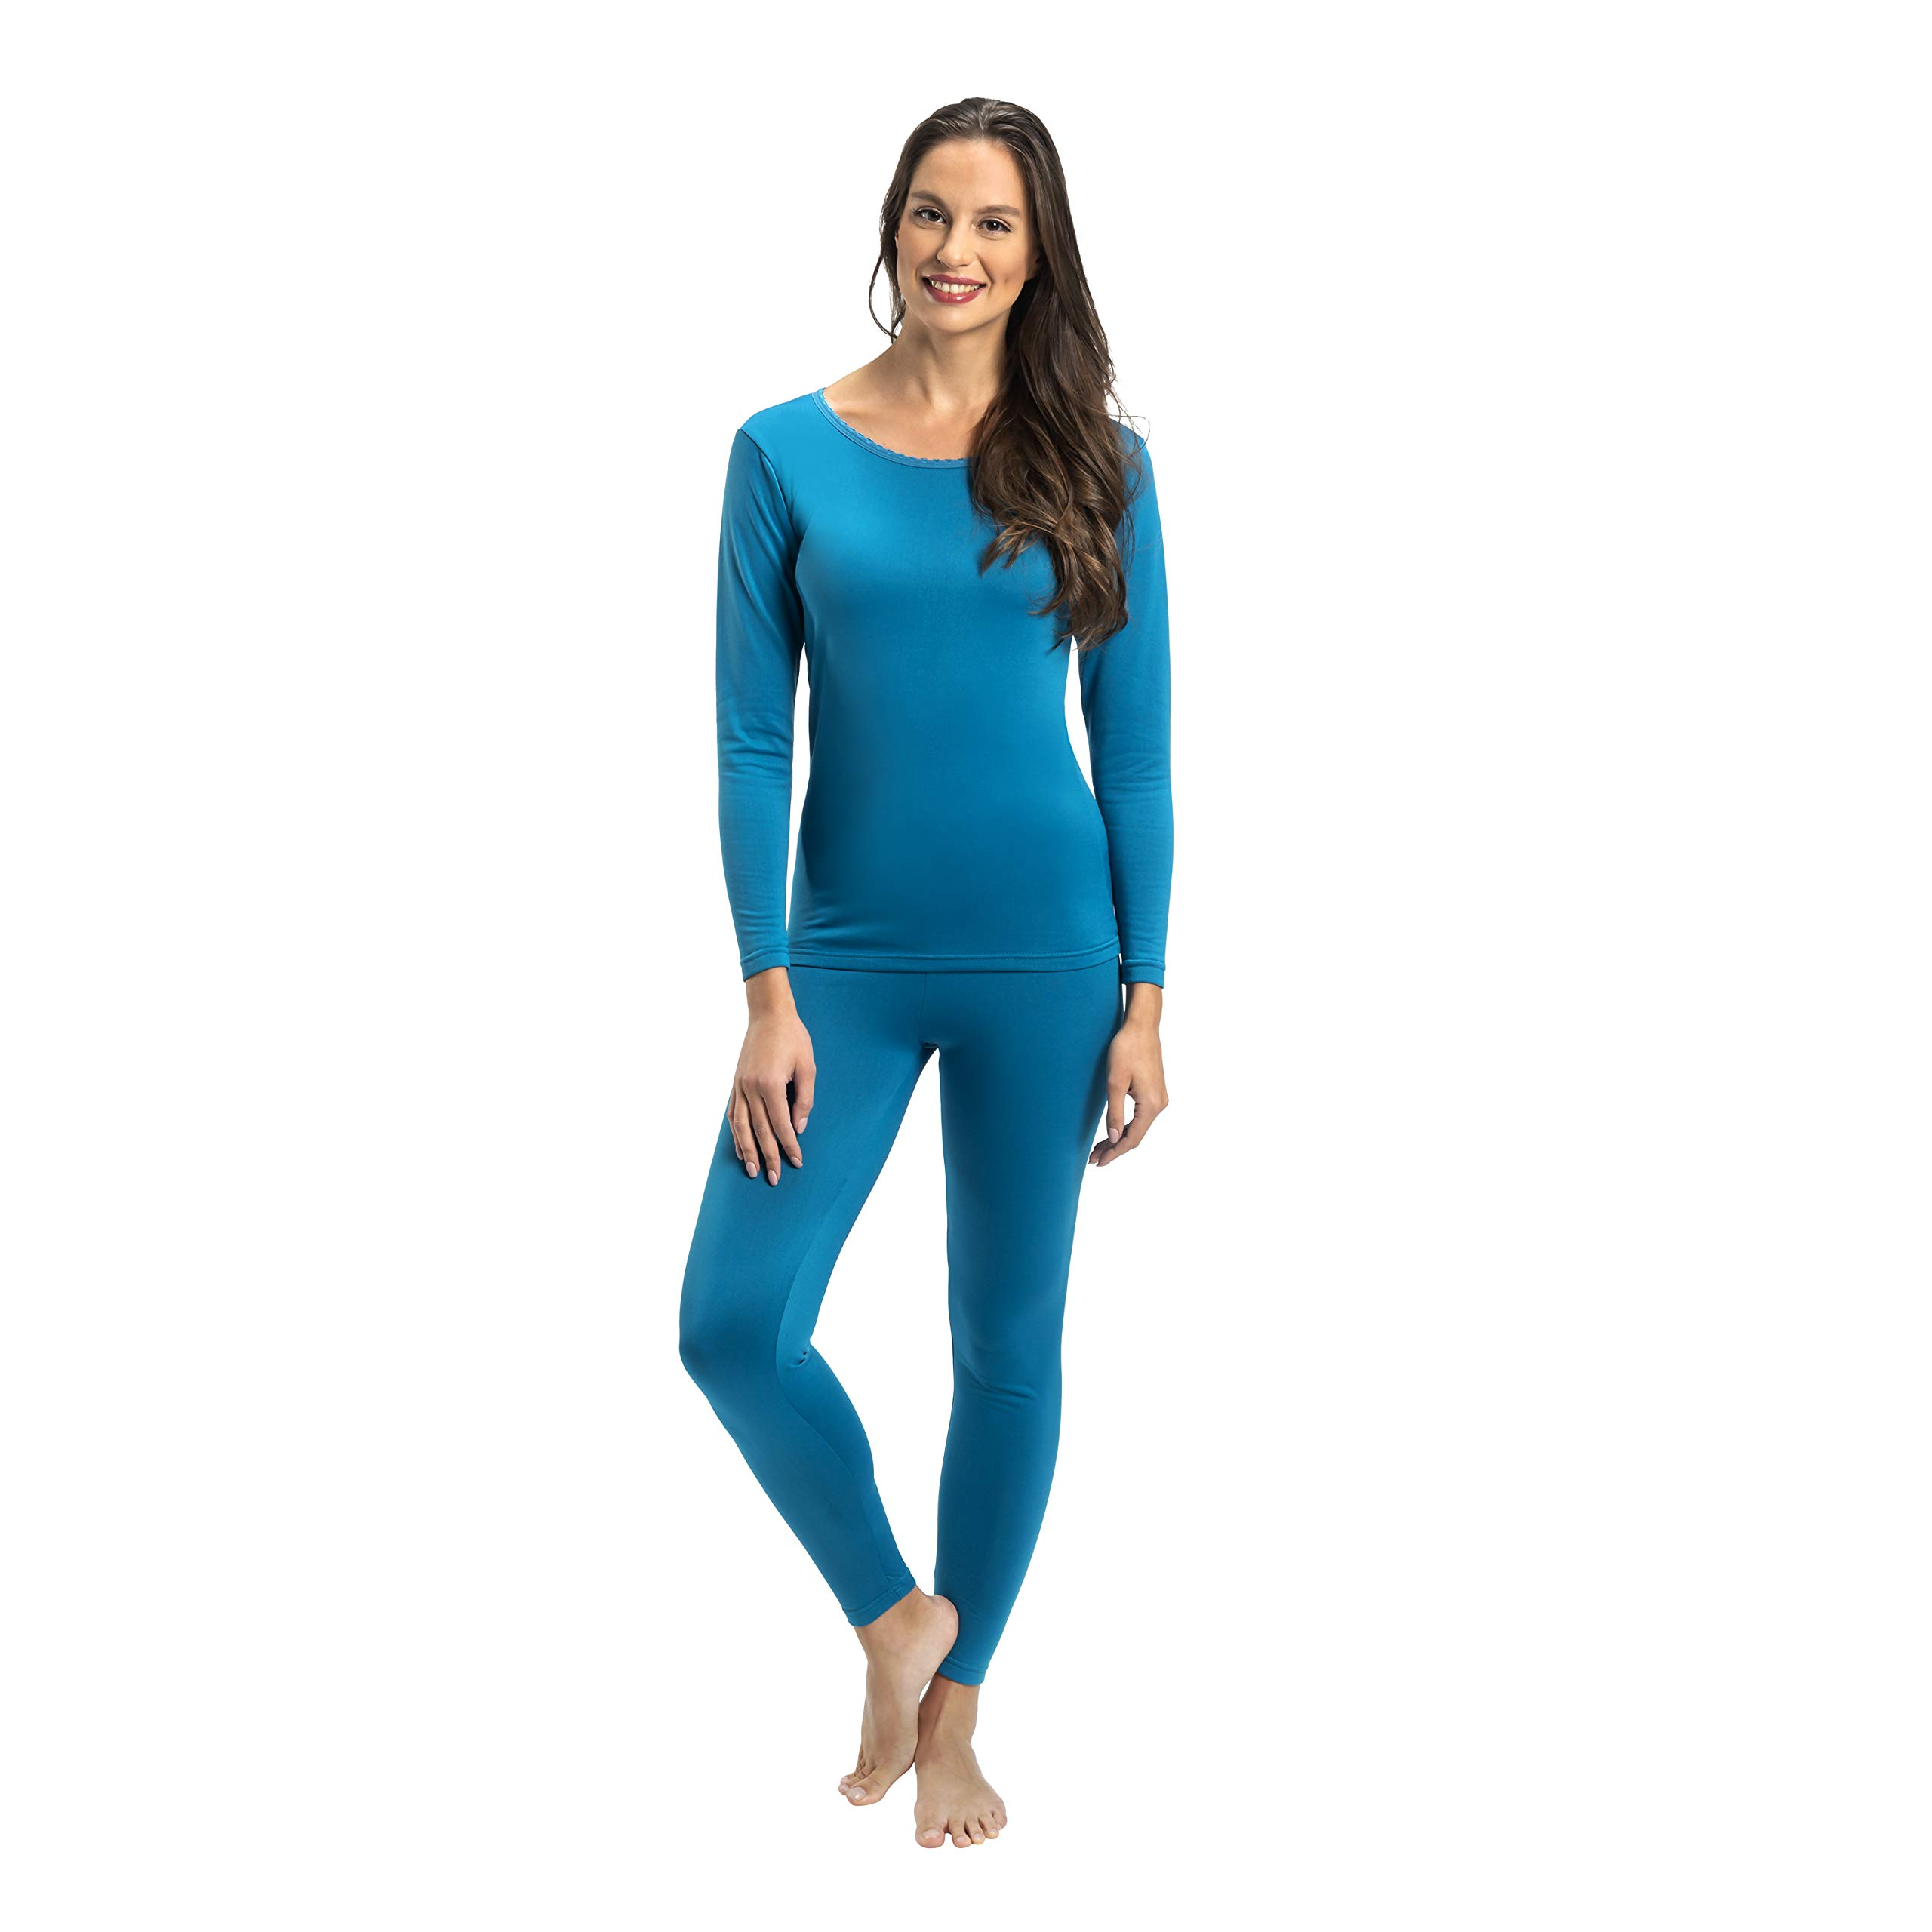 Rocky Womens Thermal 2 Pc Long John Underwear Set Top and Bottom Smooth Knit (Large, Teal) by Rocky